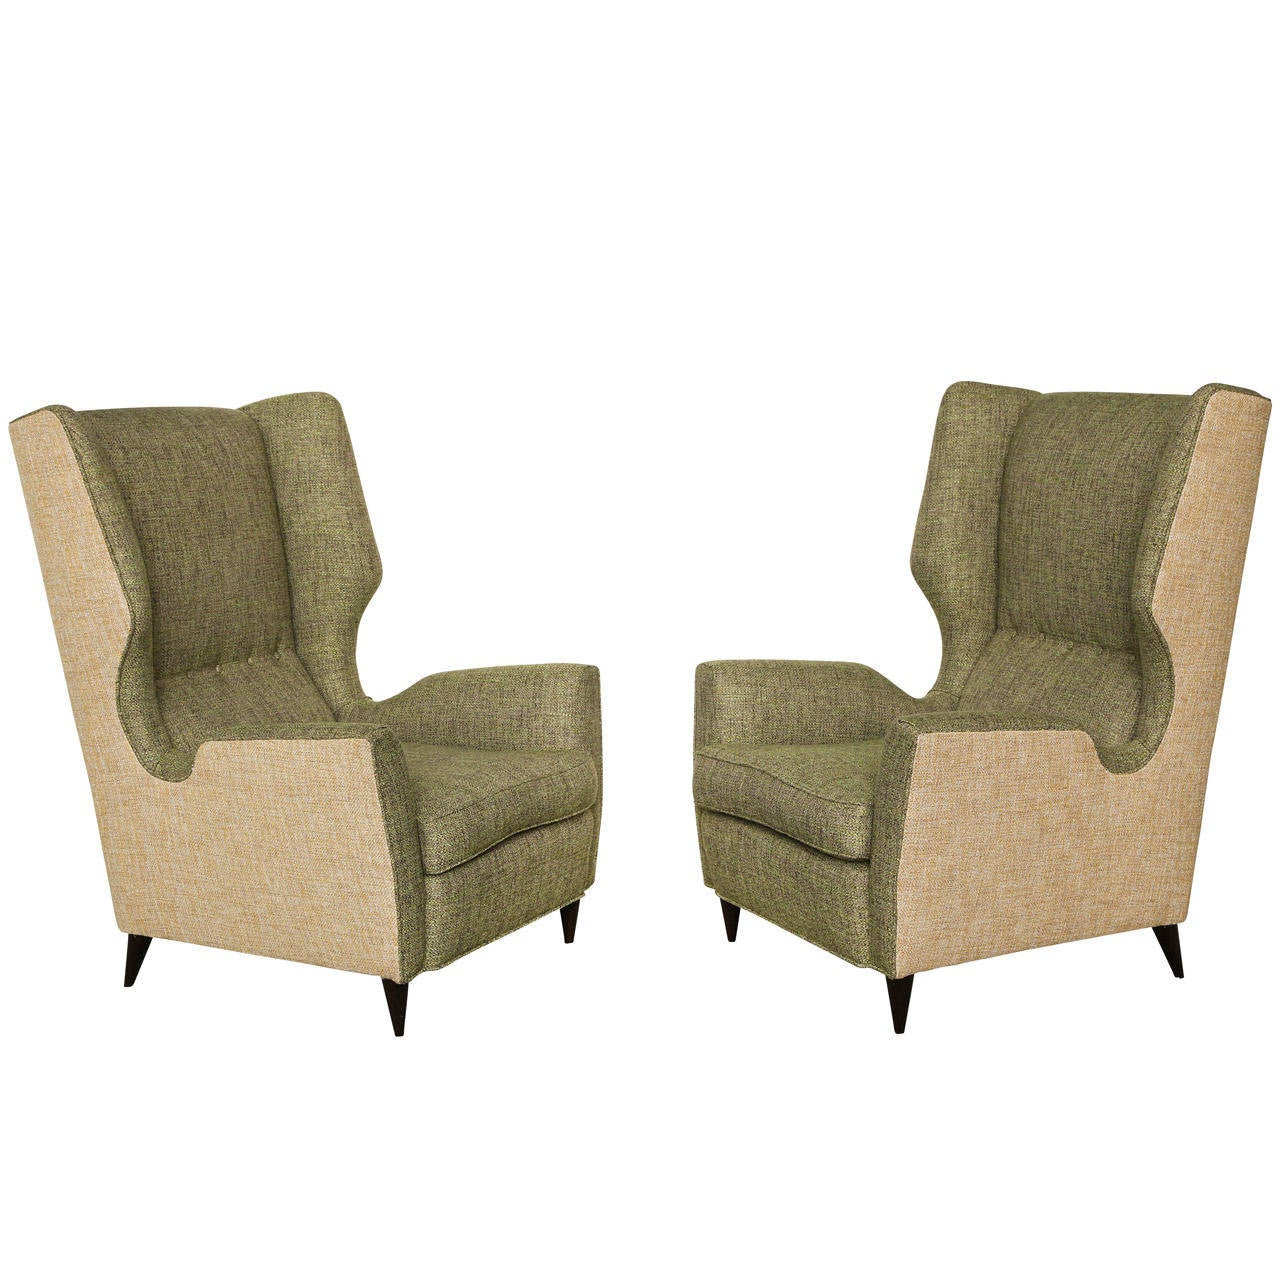 stool chair fantastic furniture dxracer gaming canada pair of high back wing chairs for sale at 1stdibs